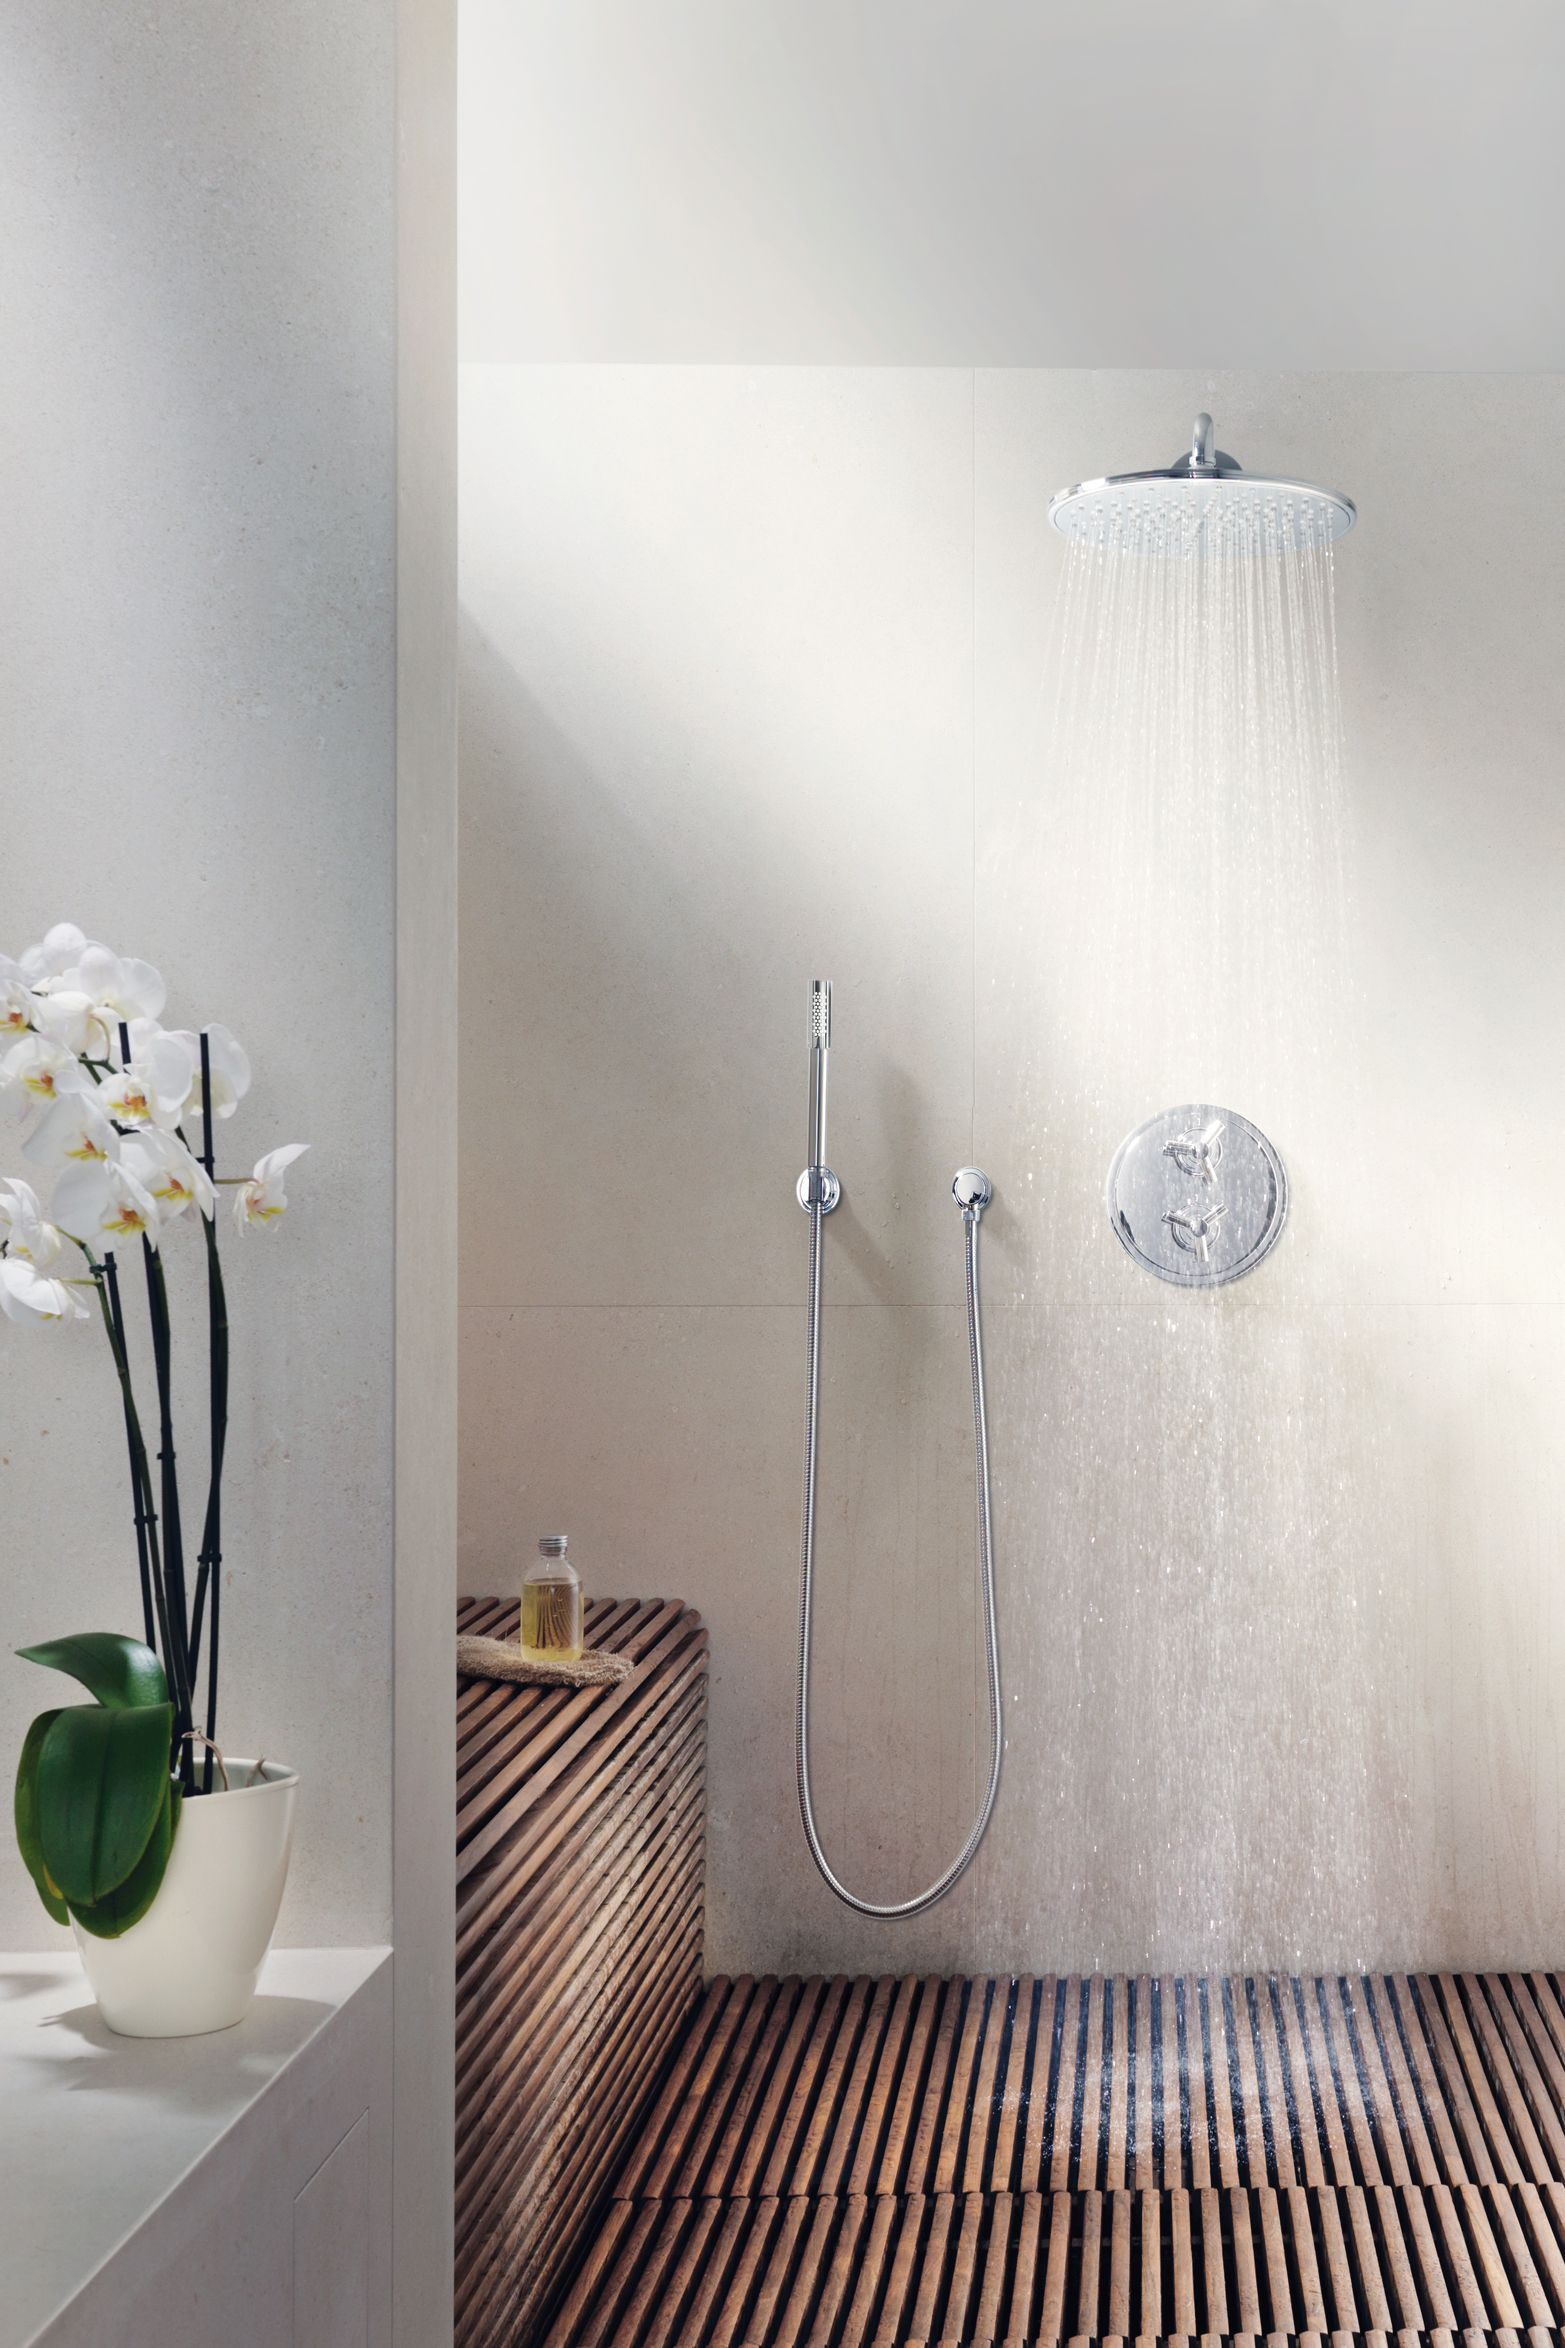 Take Your Daily Getaway To The Rainforest With This Jumbo Rainshower